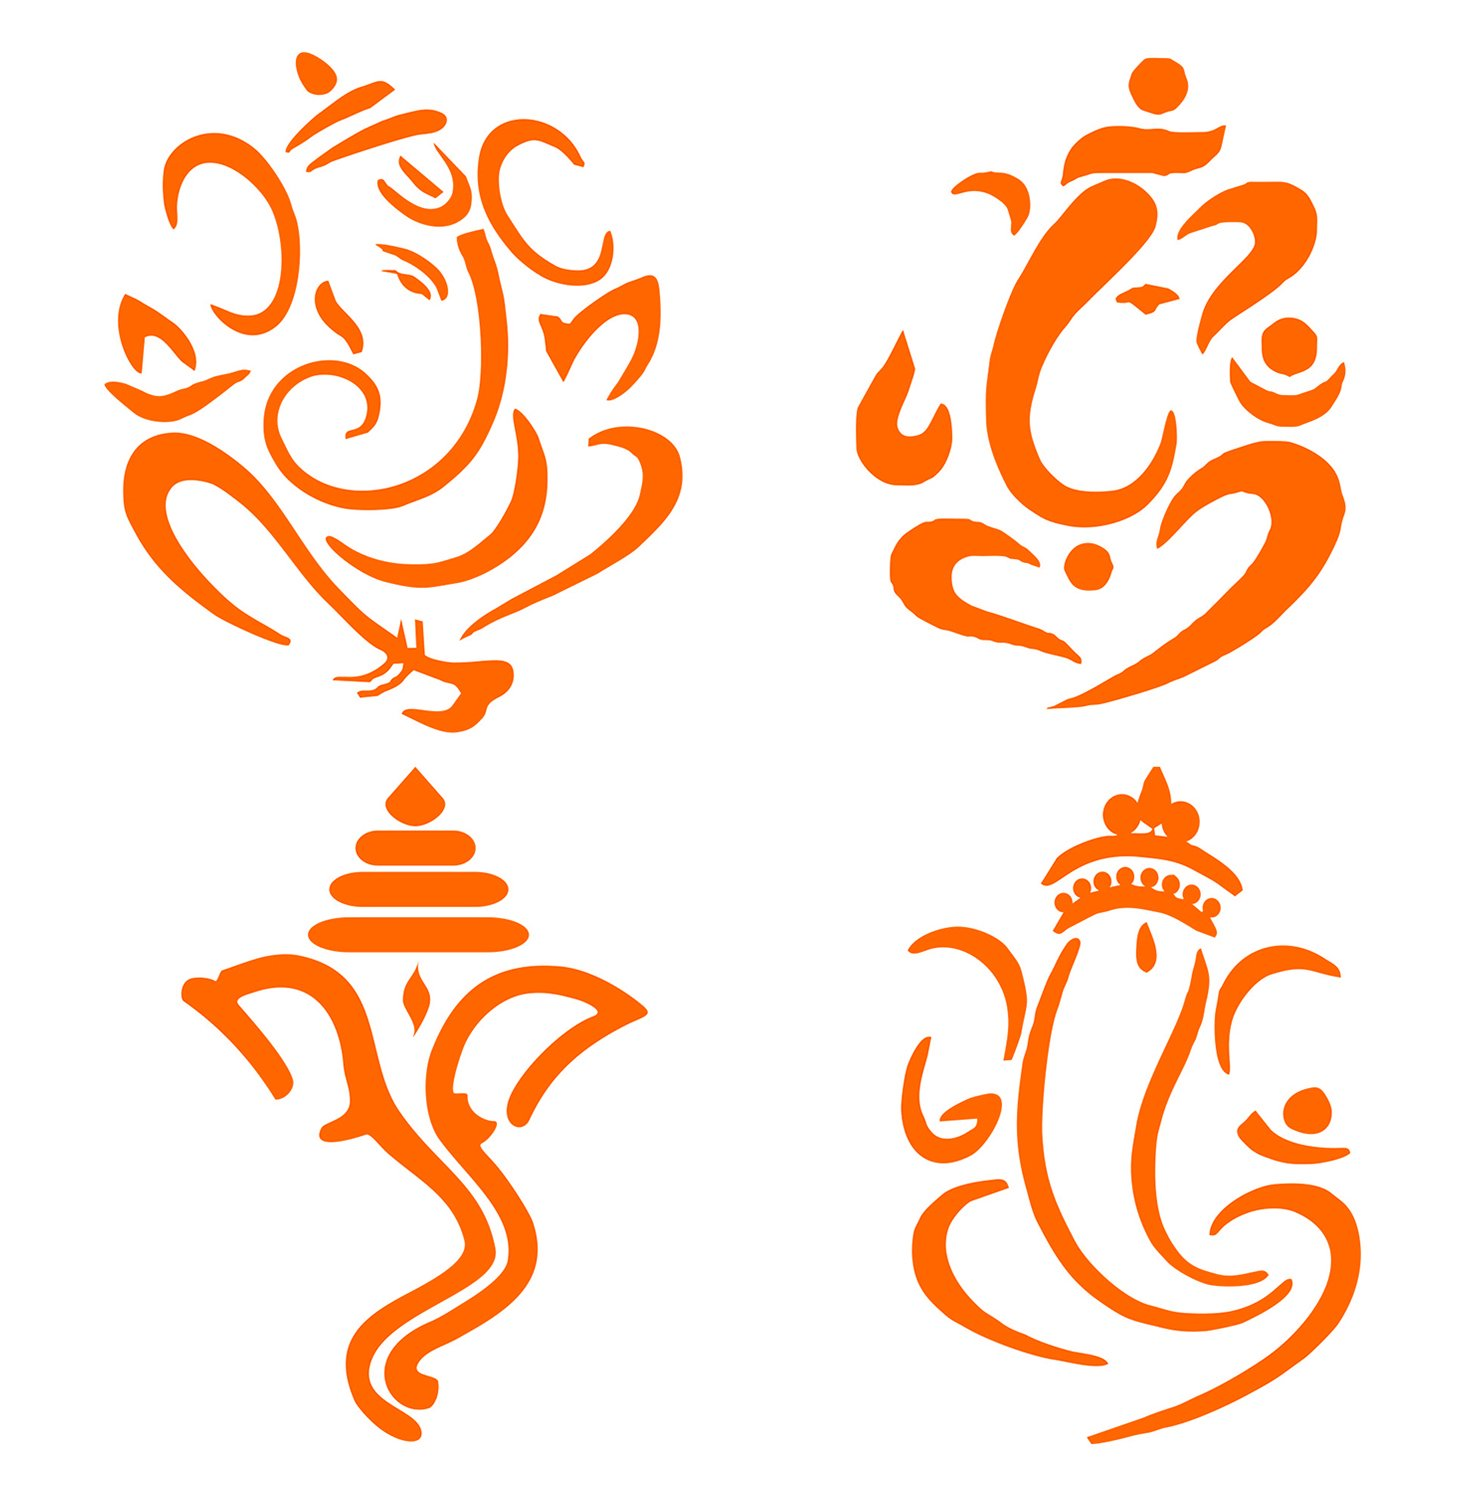 Bike sticker design images - Idesign Orange Lord Ganesh Sticker For Car Scooter And Bikes